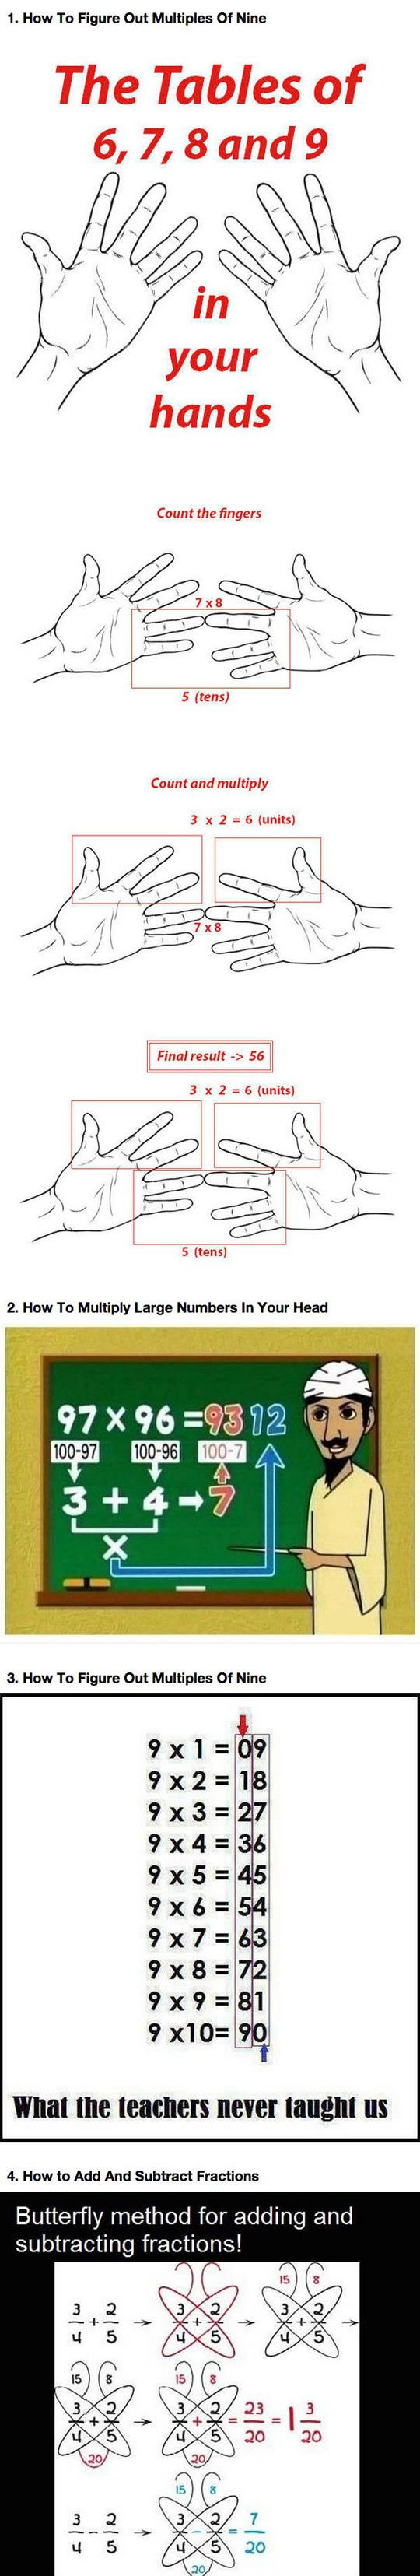 If You Re Bad At Math Learn These Simple Tricks Simple Math Learning Math Math For Kids Adding large numbers in your head